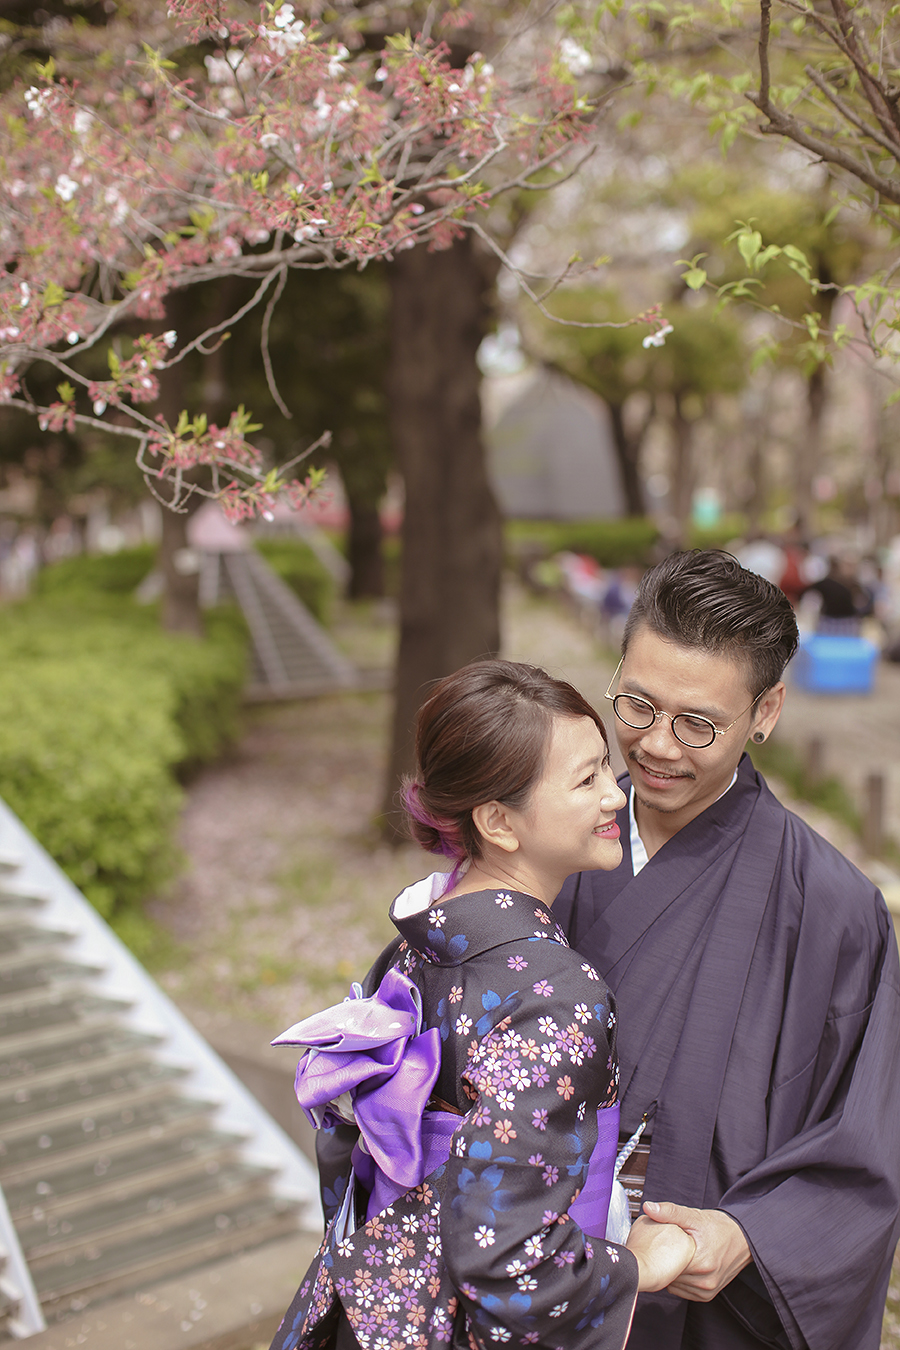 tokyo hakone japan spring sakura . engagement wedding photography by kurt ahs . ns + eu . 0415.jpg